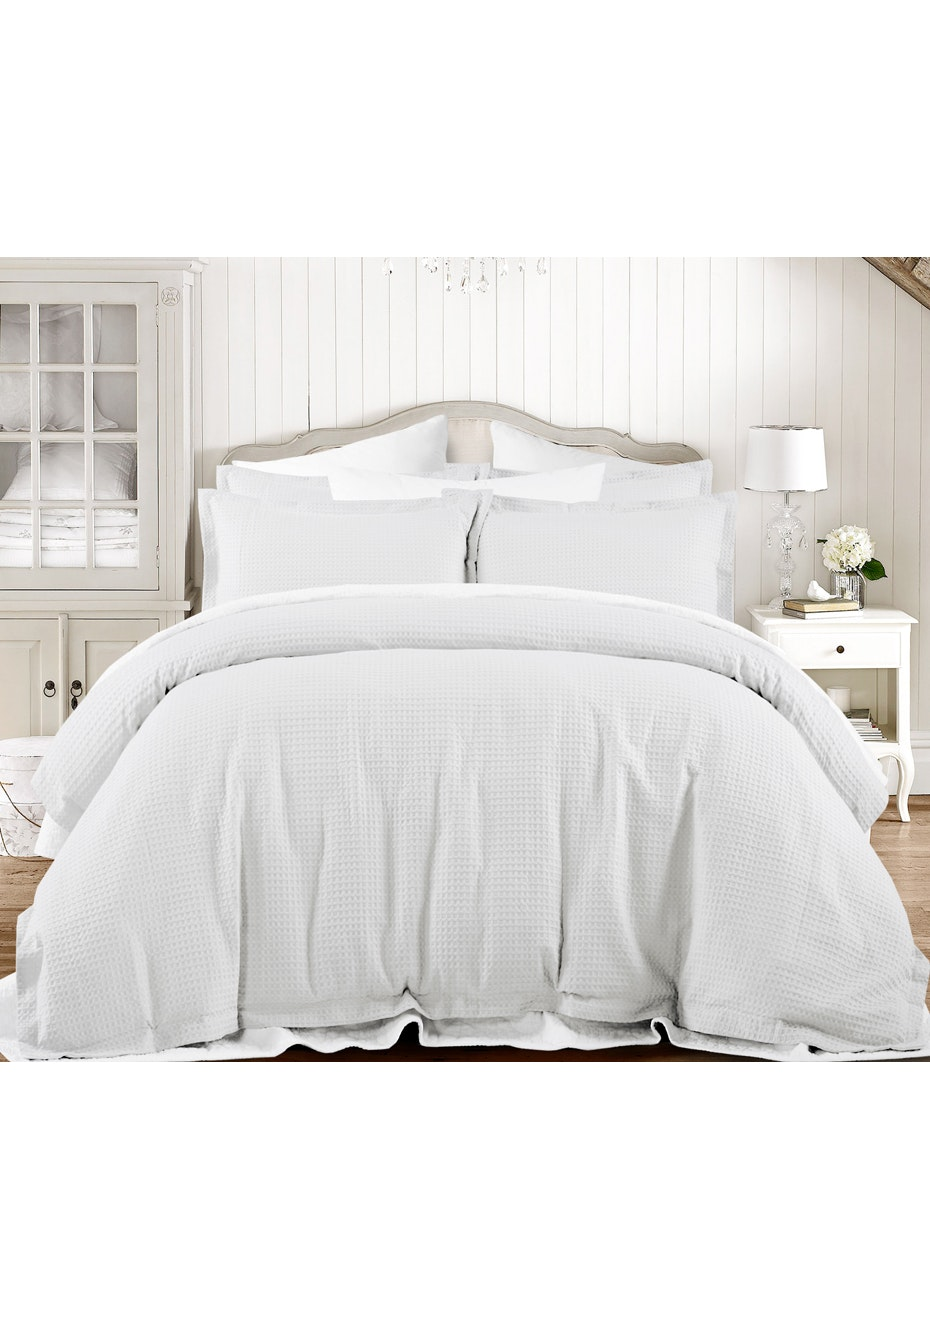 Grand Atelier White Hotel Waffle Quilt Cover Set- Queen Bed